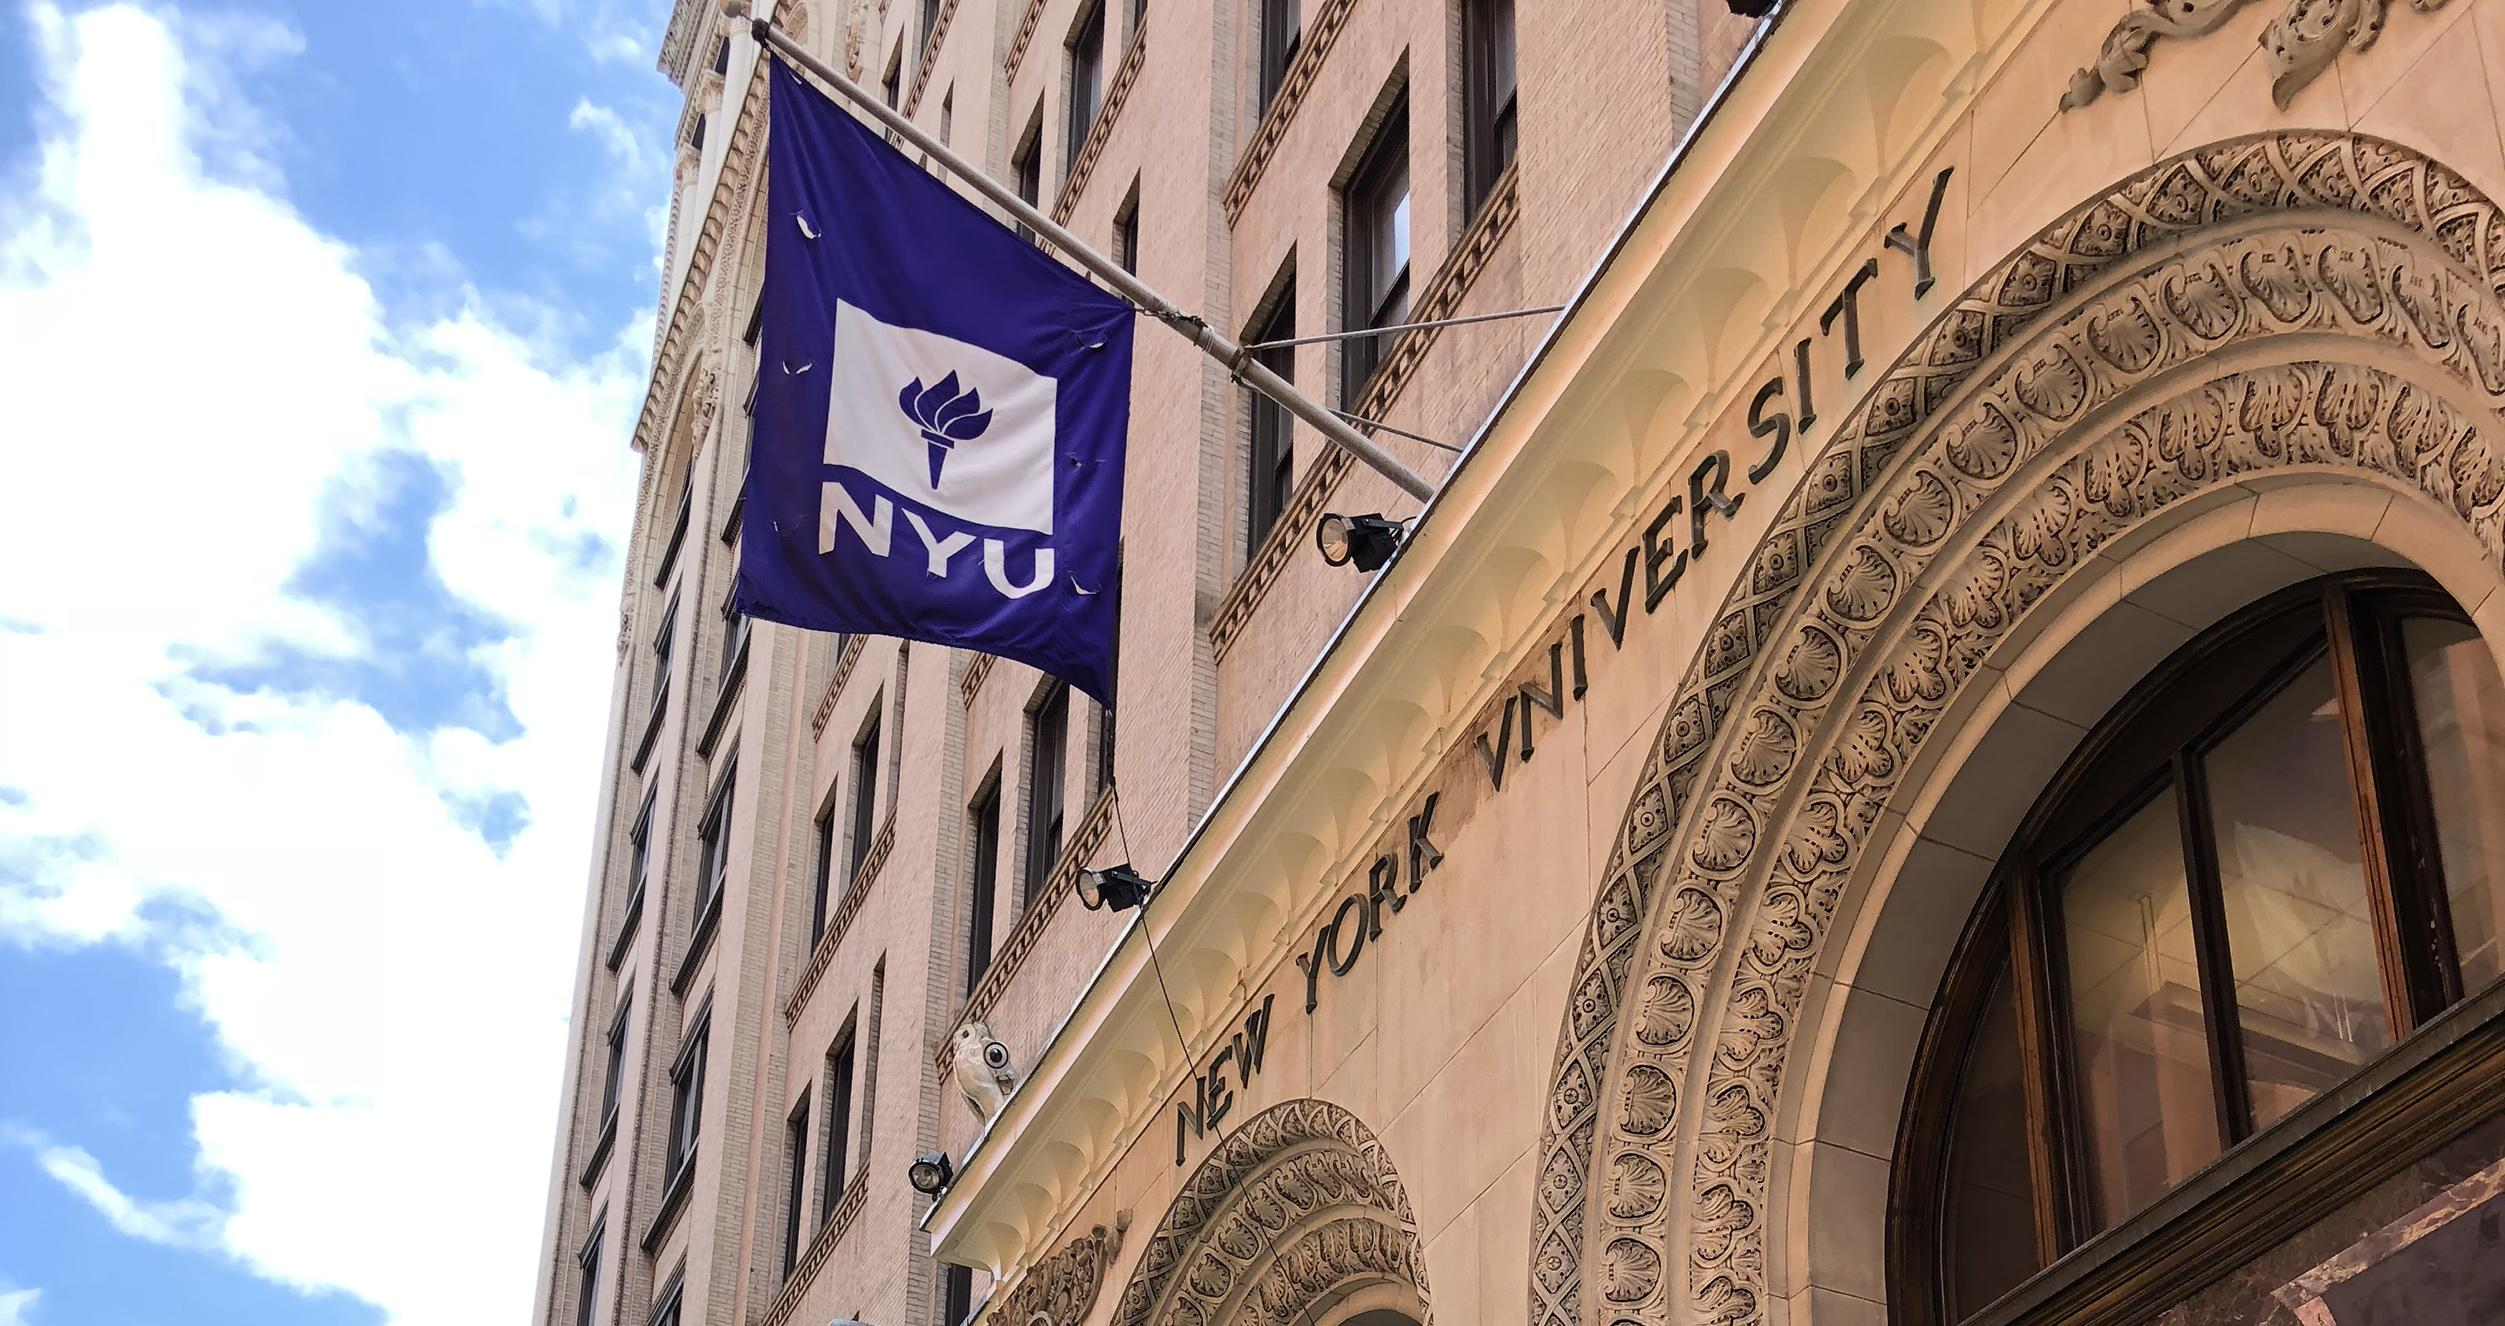 Back of KMC with NYU Flag